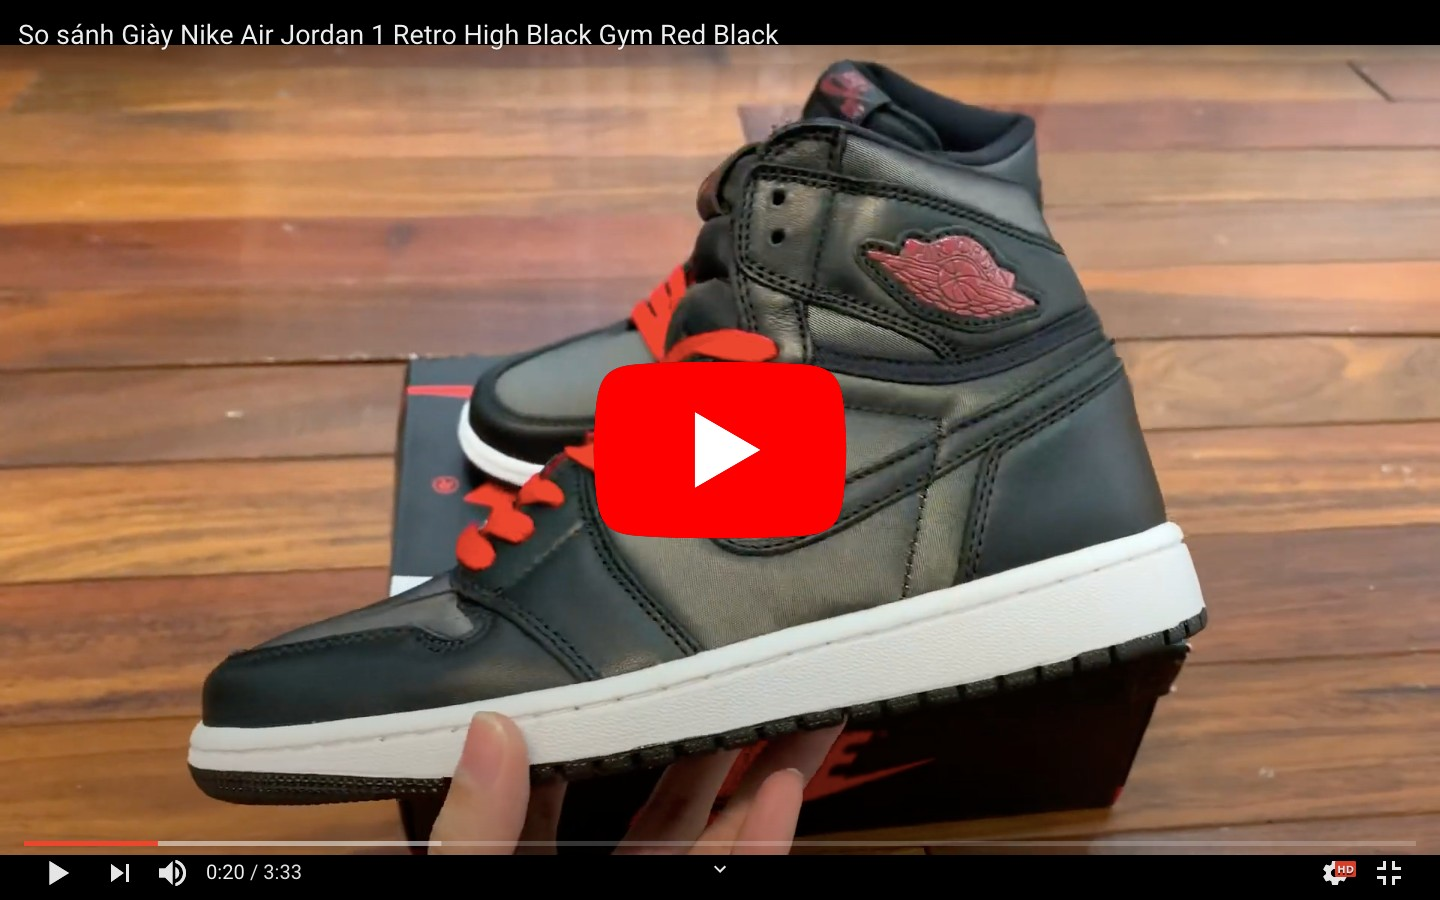 Unbox giày jordan 1 black gym red black